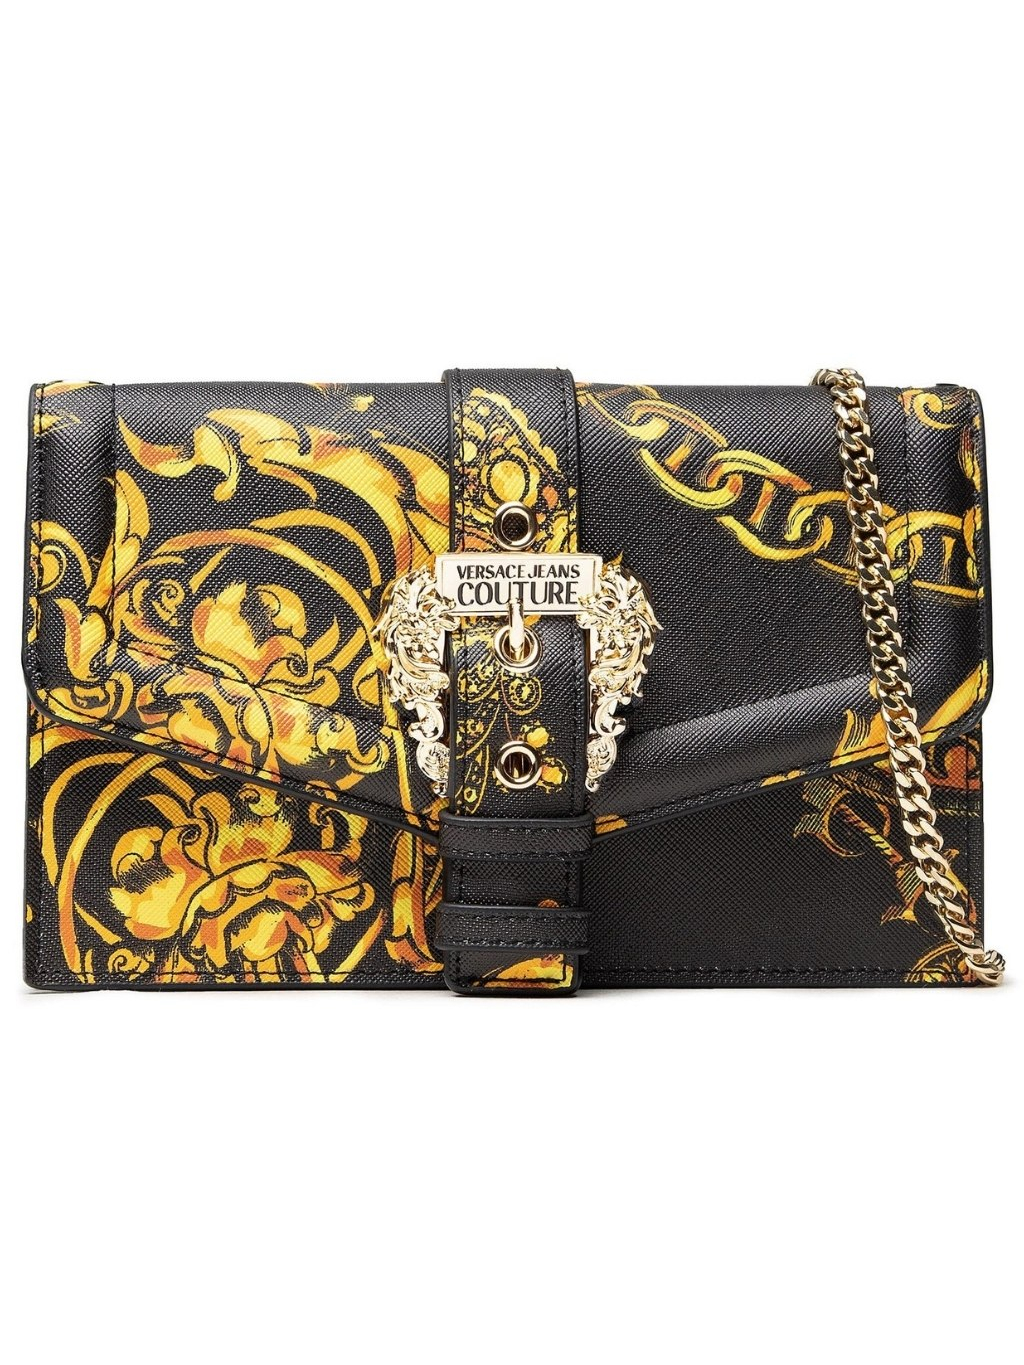 versace jeans couture gold listova kabelka (3)